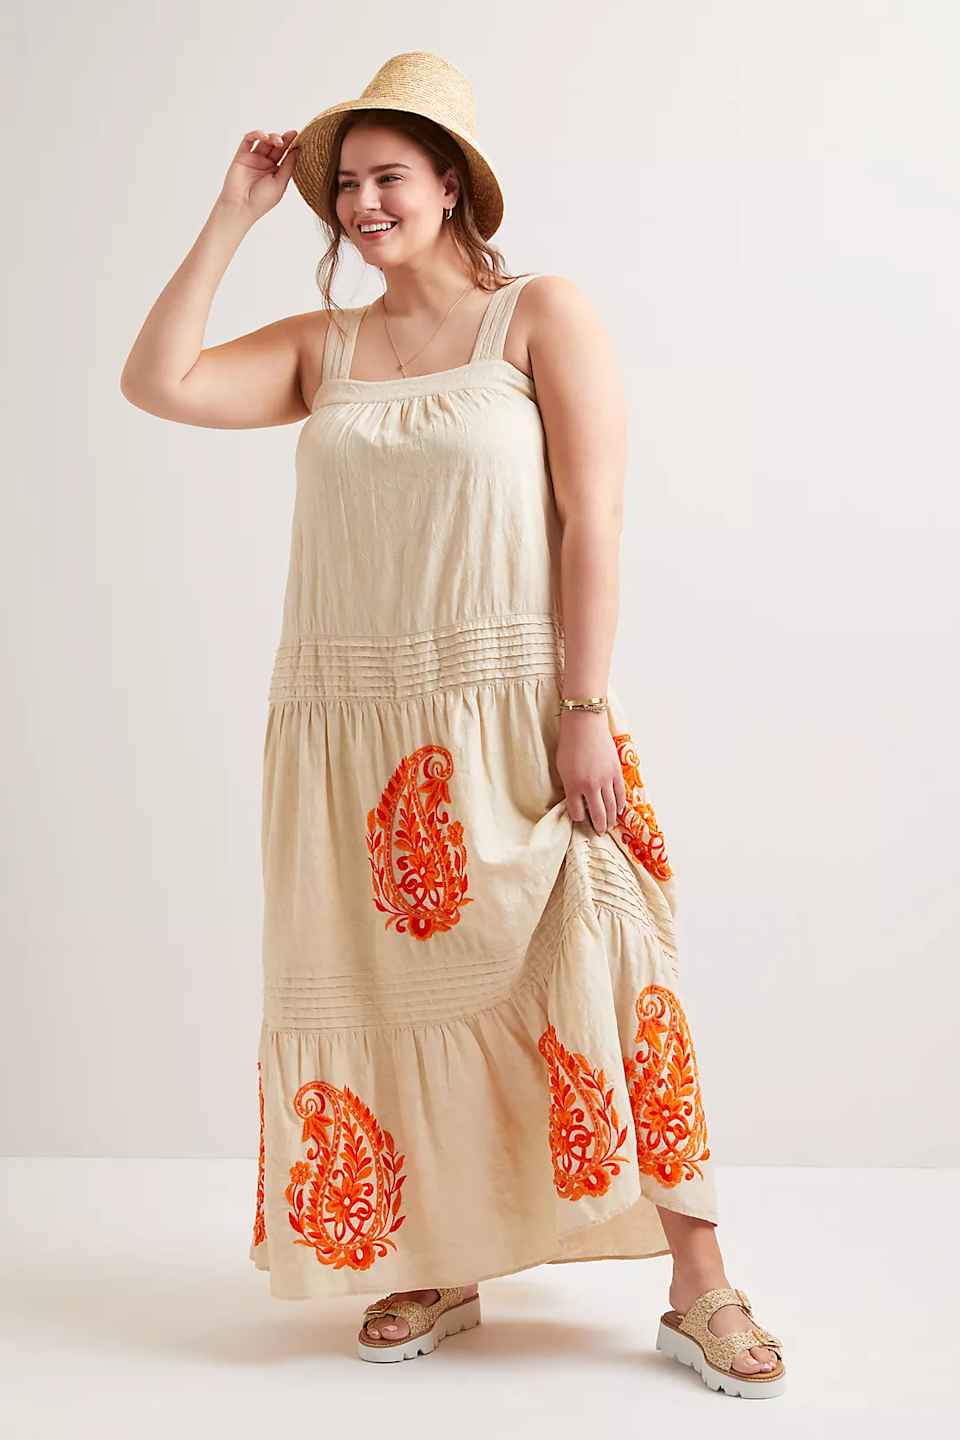 """<h2>Felicity Embroidered Maxi Dress</h2><br><strong>Sizes Available: 1X-3X</strong><br><br><em>Shop <strong><a href=""""https://www.anthropologie.com/shop/felicity-embroidered-maxi-dress"""" rel=""""nofollow noopener"""" target=""""_blank"""" data-ylk=""""slk:Anthropologie"""" class=""""link rapid-noclick-resp"""">Anthropologie</a></strong></em><br><br><strong>Anthropologie</strong> Felicity Embroidered Maxi Dress, $, available at <a href=""""https://go.skimresources.com/?id=30283X879131&url=https%3A%2F%2Fwww.anthropologie.com%2Fshop%2Ffelicity-embroidered-maxi-dress"""" rel=""""nofollow noopener"""" target=""""_blank"""" data-ylk=""""slk:Anthropologie"""" class=""""link rapid-noclick-resp"""">Anthropologie</a>"""